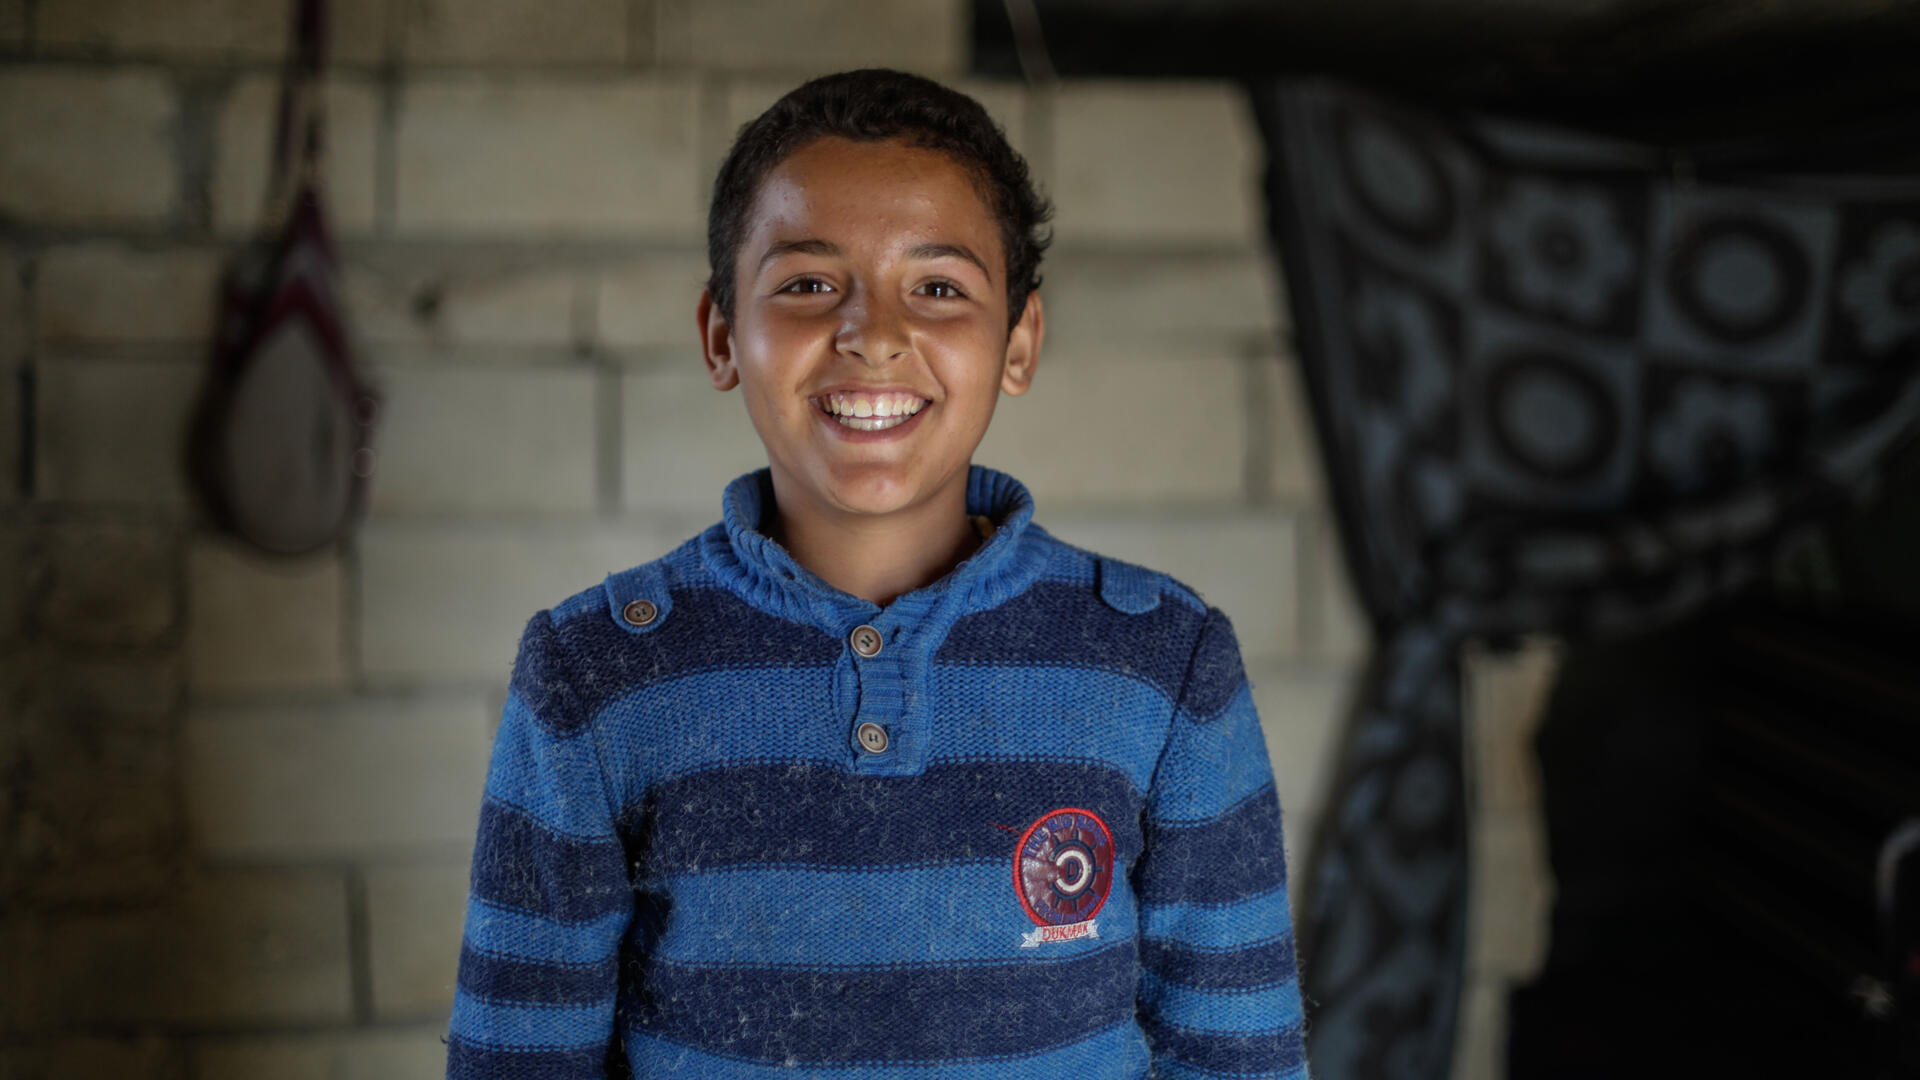 Tareq, wearing a blue and white sweater, smiles for the camera in his home.